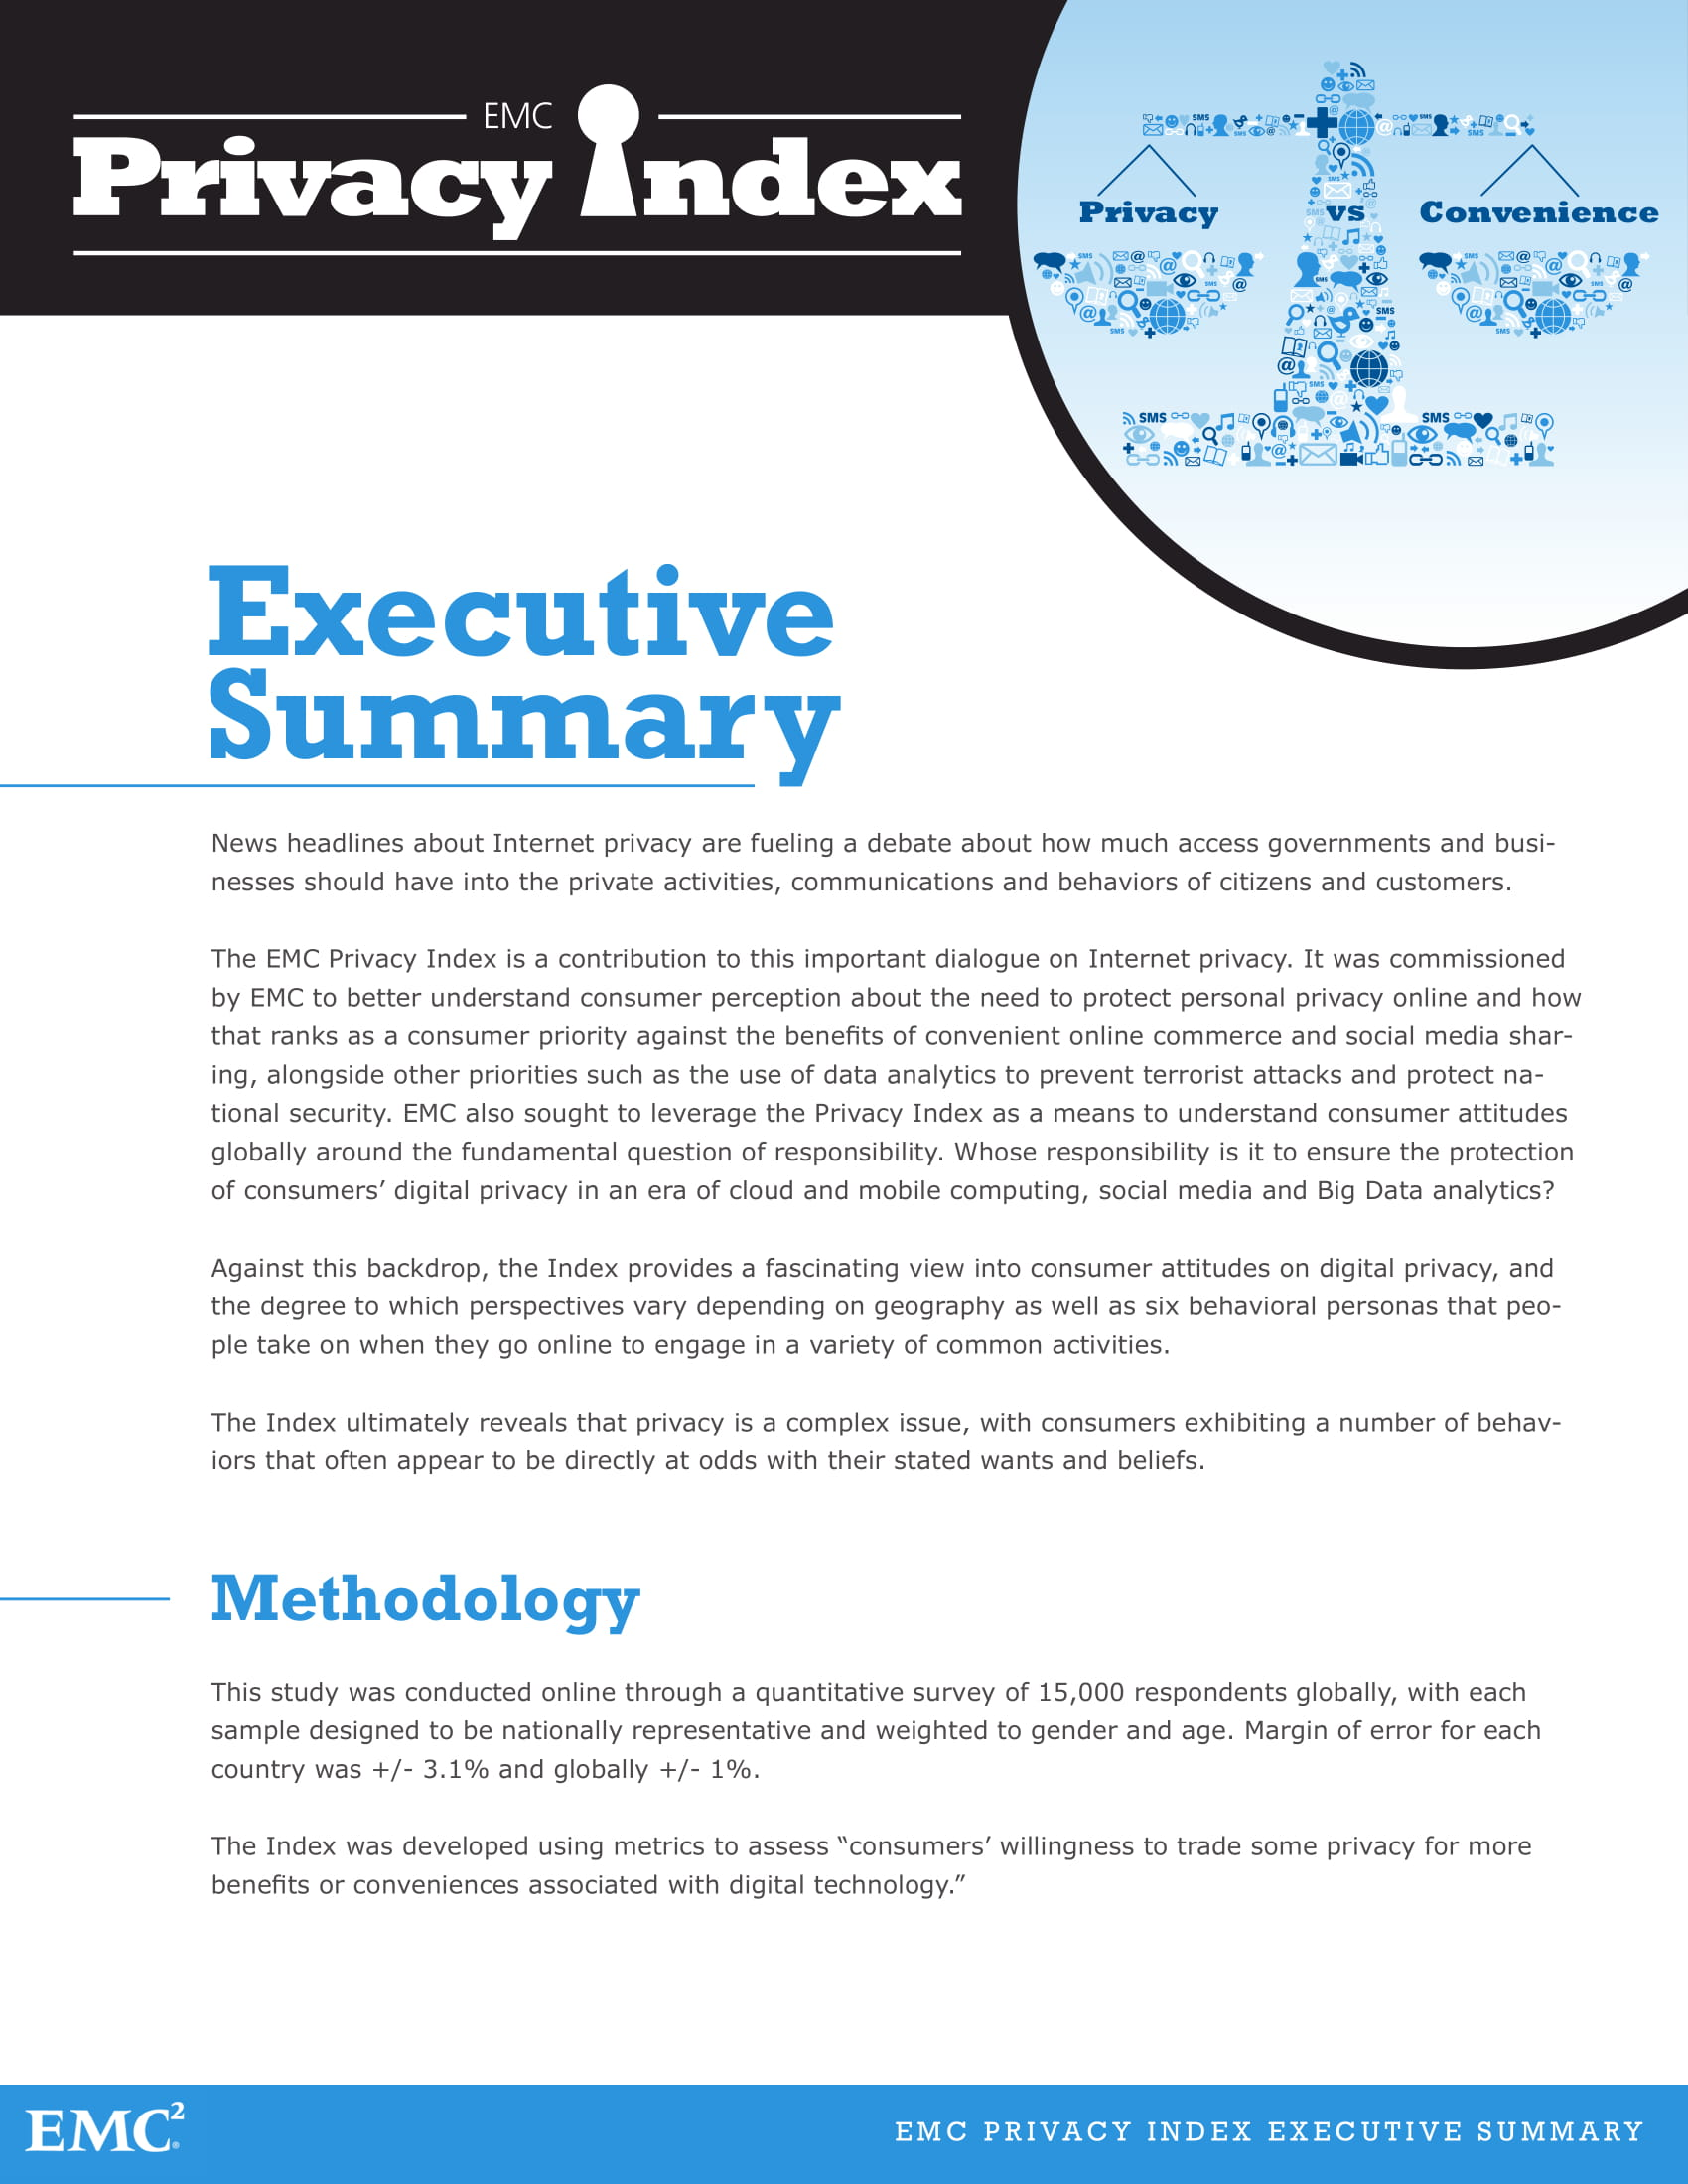 privacy index executive summary example